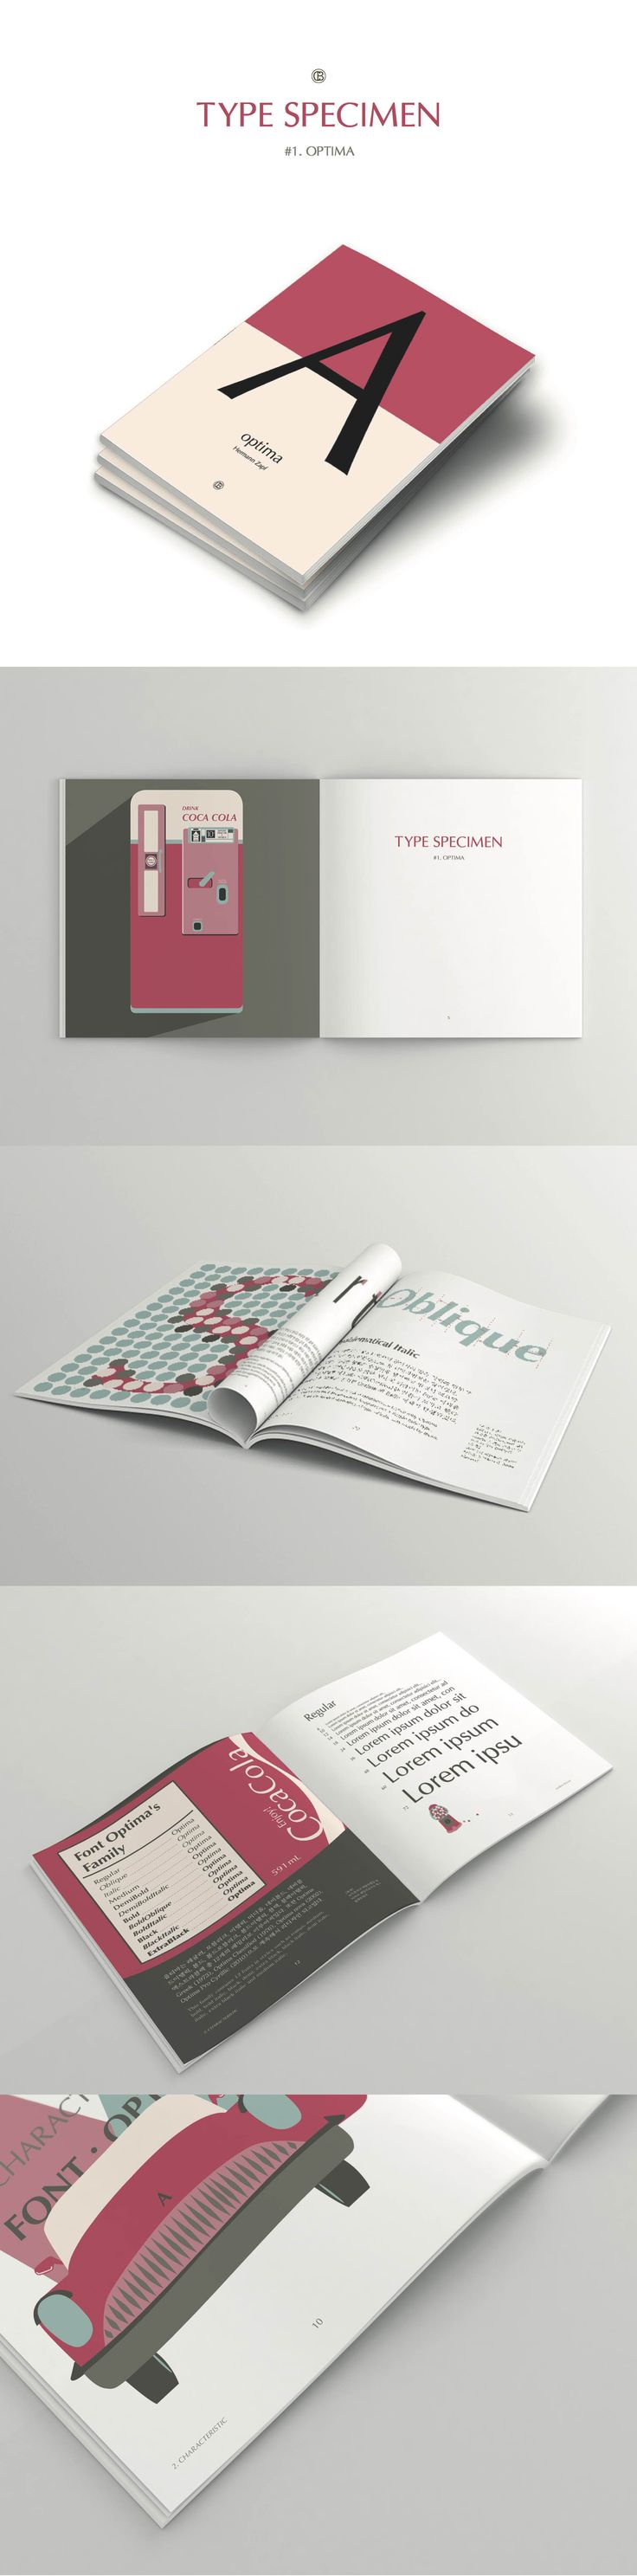 Project about type specimen Optima designed by Hermman Zapf illustrate design / graphic design / editorial design / typography design